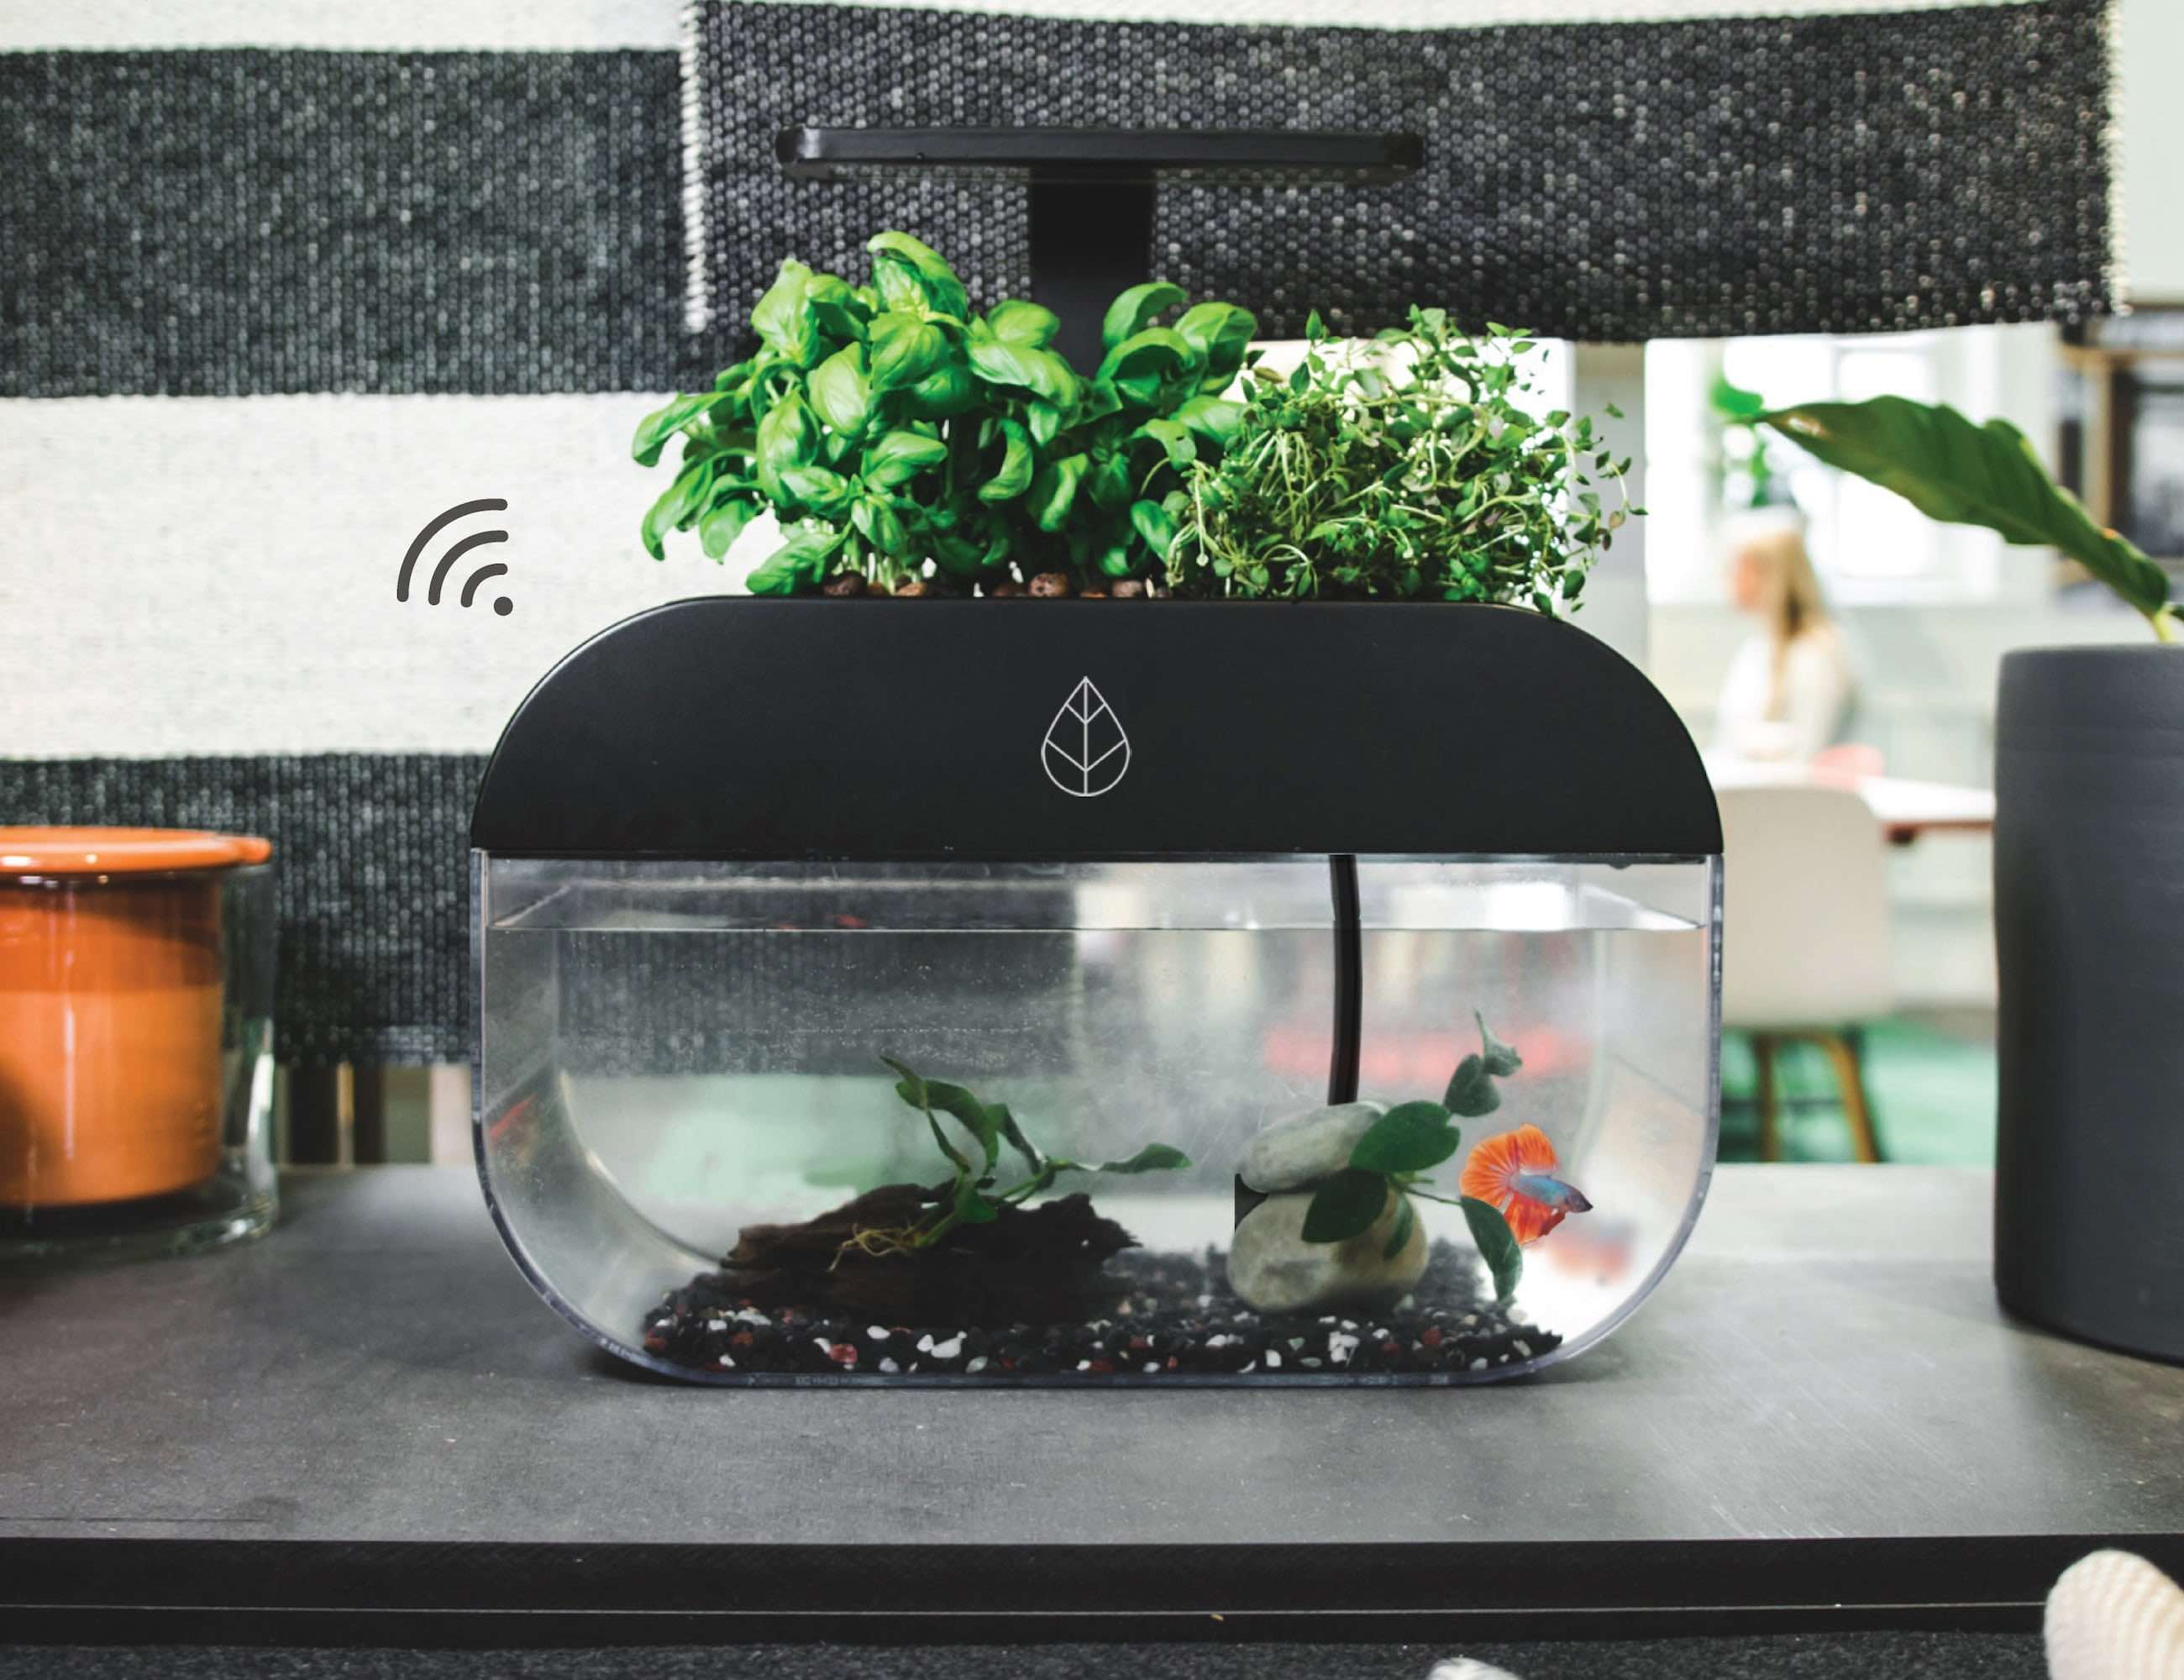 EcoGarden Smart Interactive Ecosystem